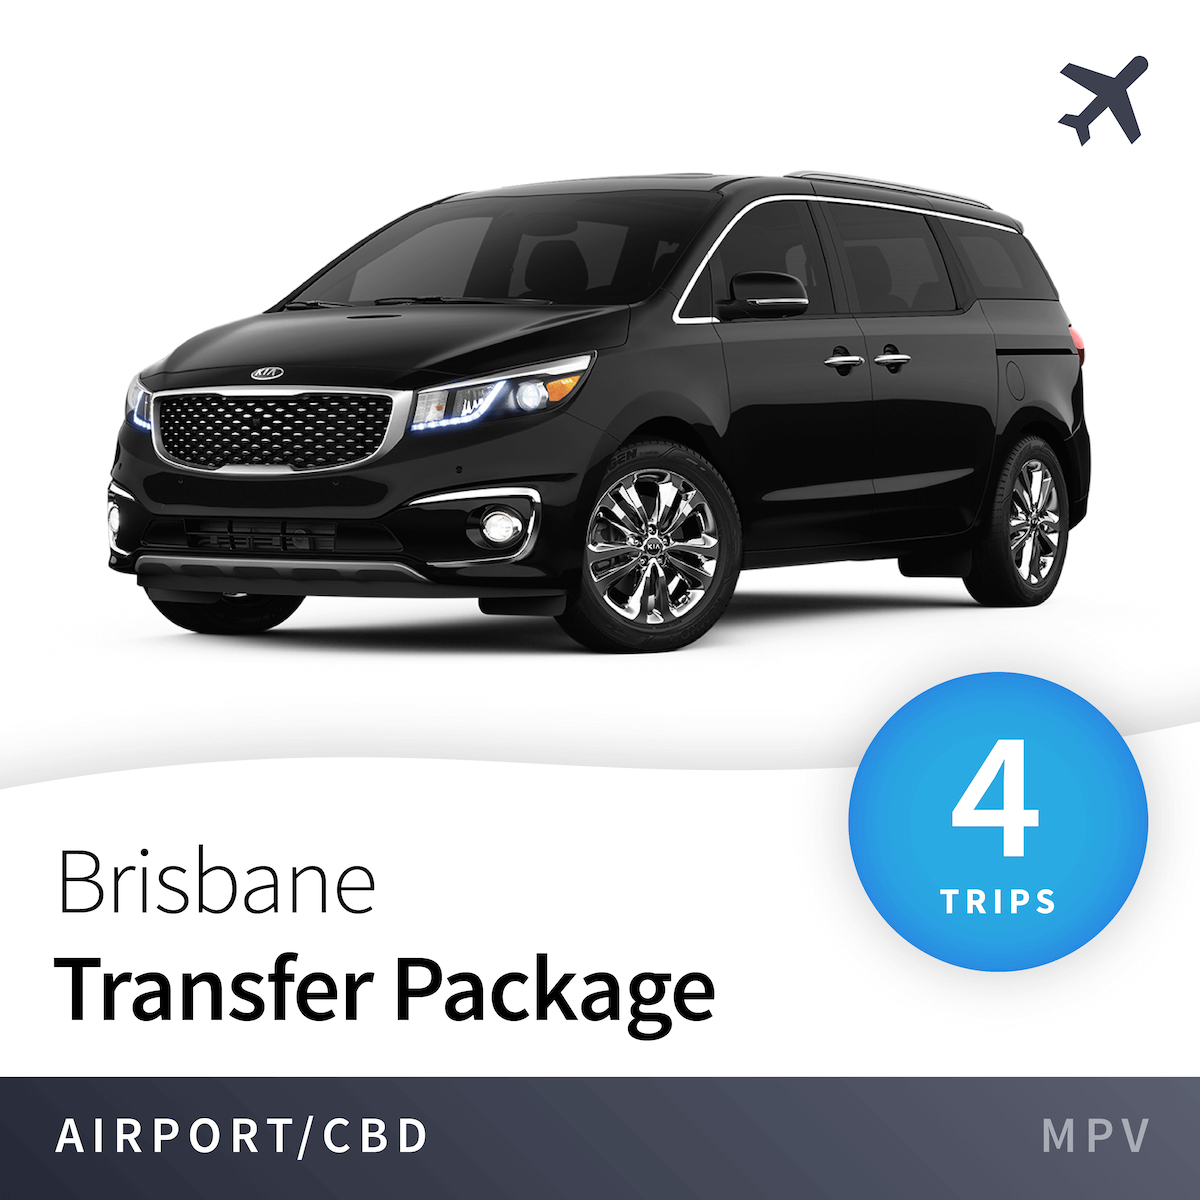 Brisbane Airport Transfer Package - MPV (4 Trips) 10